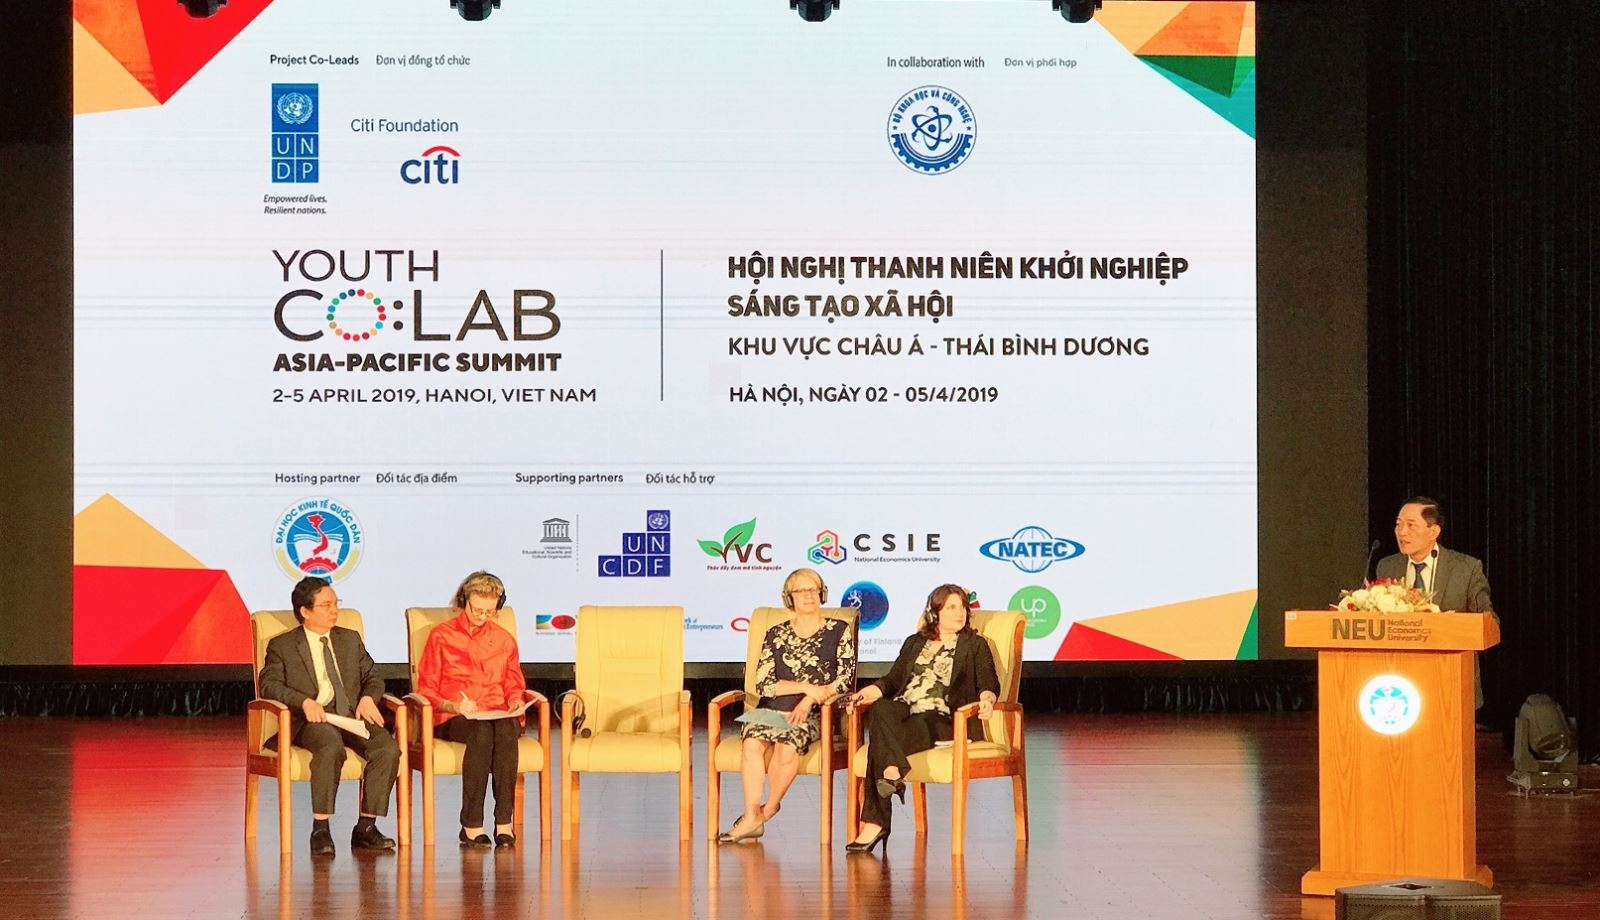 UNDP accelerates the largest youth social entrepreneurship movement in Asia - Pacific